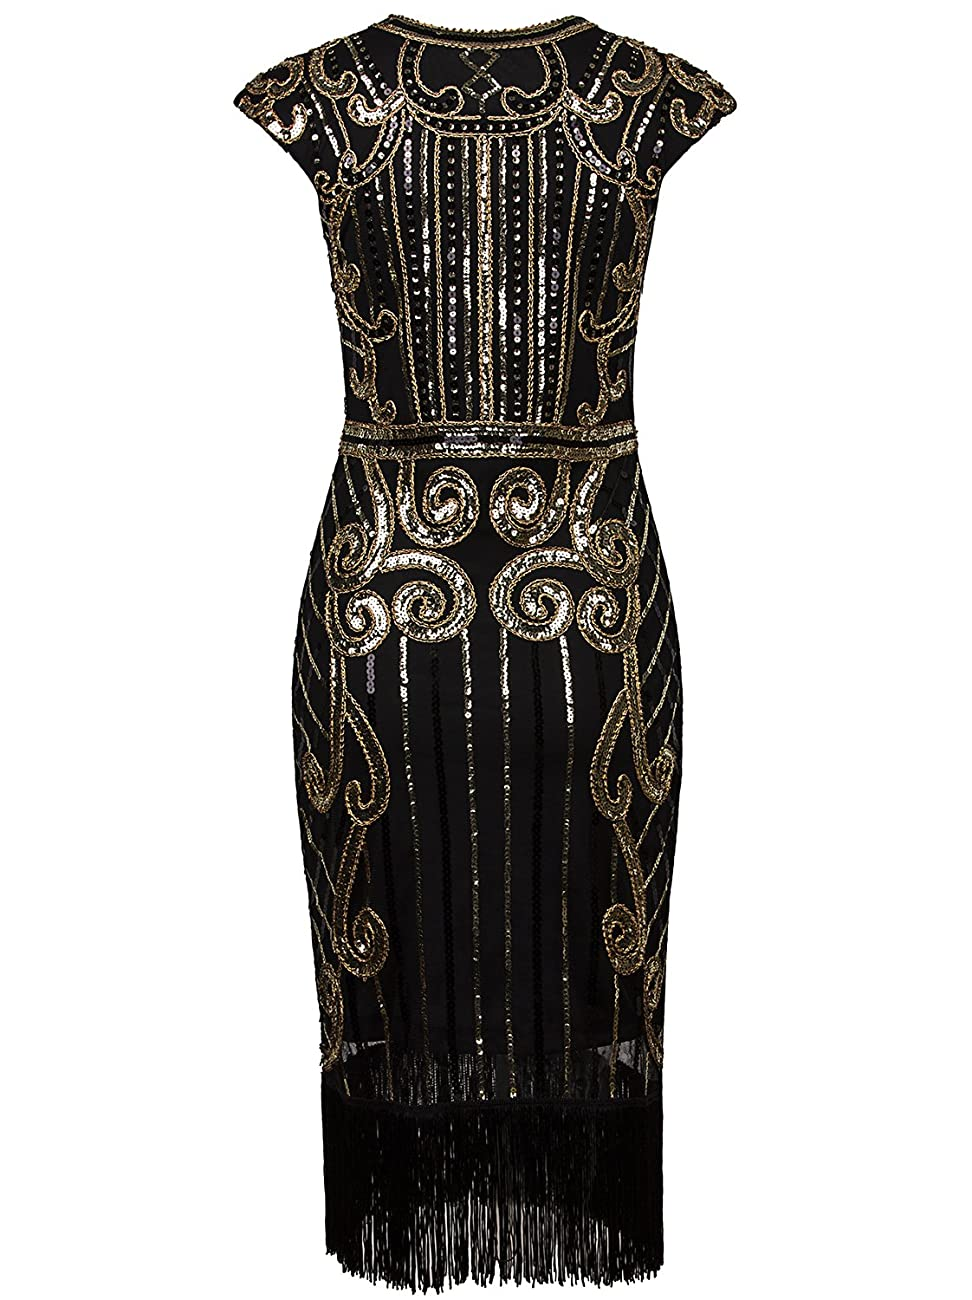 Vijiv 1920s Vintage Inspired Sequin Embellished Fringe Long Gatsby Flapper Dress 3